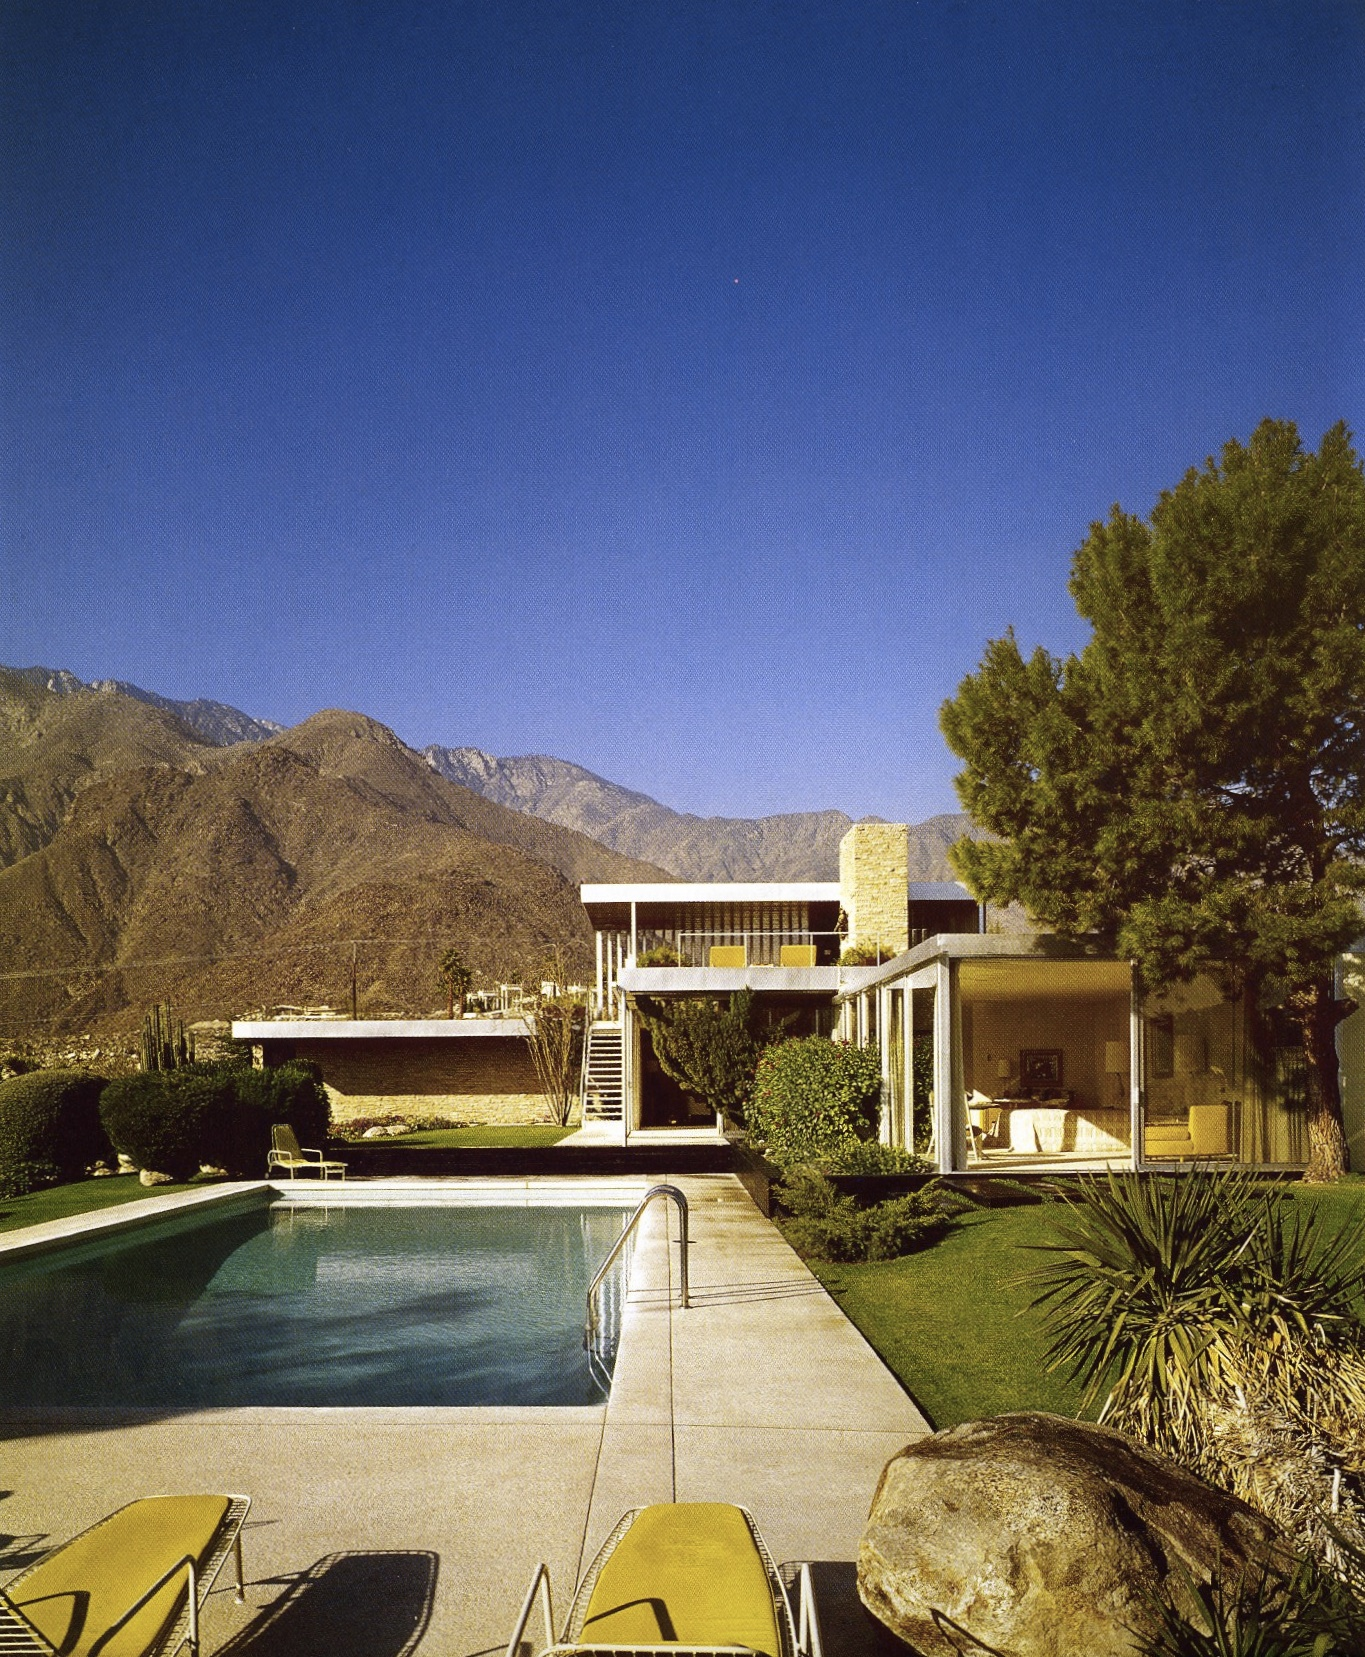 RICHARD NEUTRA'S DESIGN IN THE DESERT